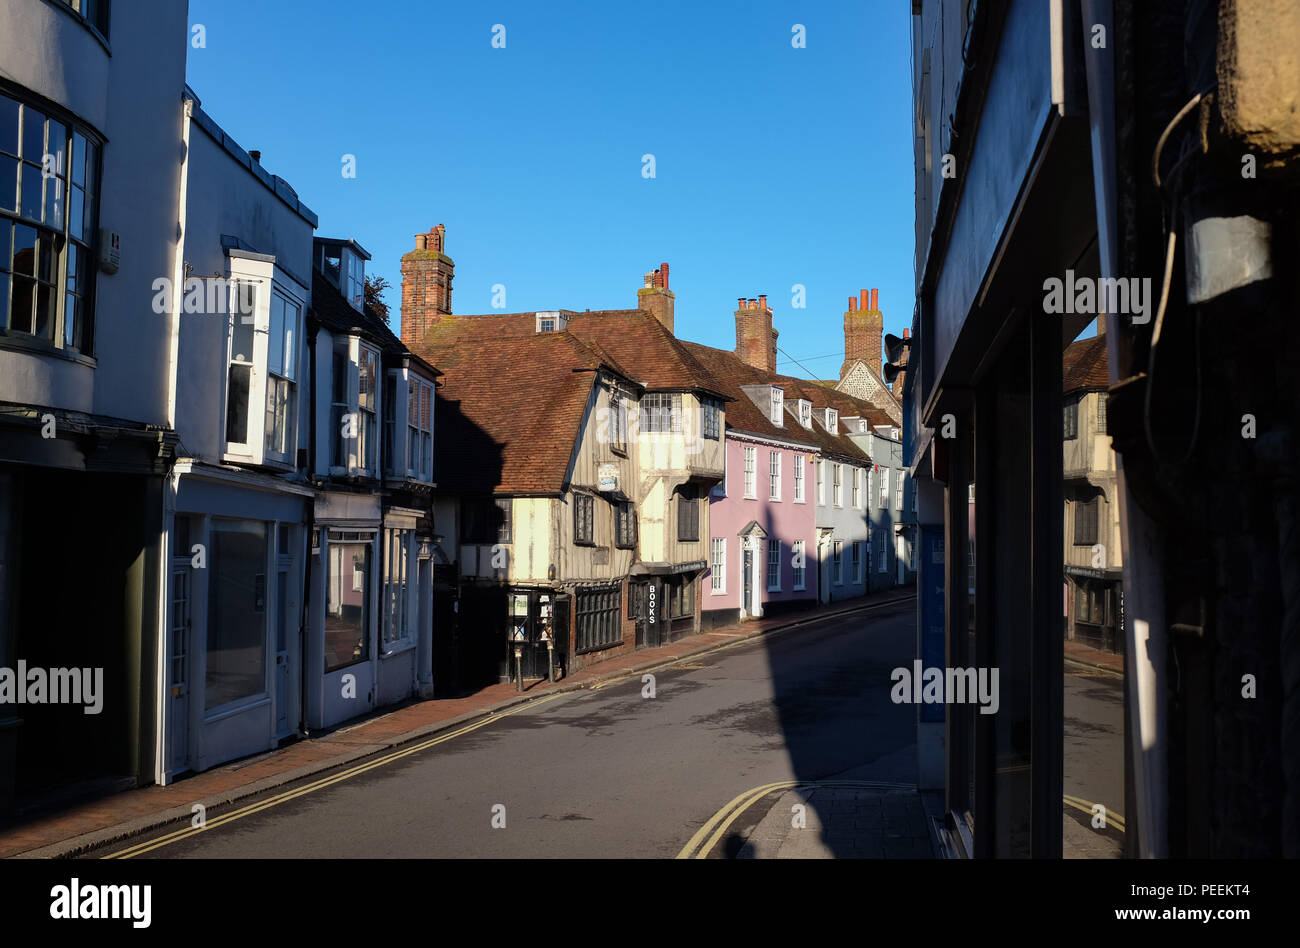 Lewes Town Centre East Sussex UK - The famous Fifteenth Century Bookshop Photograph taken by Simon Dack - Stock Image